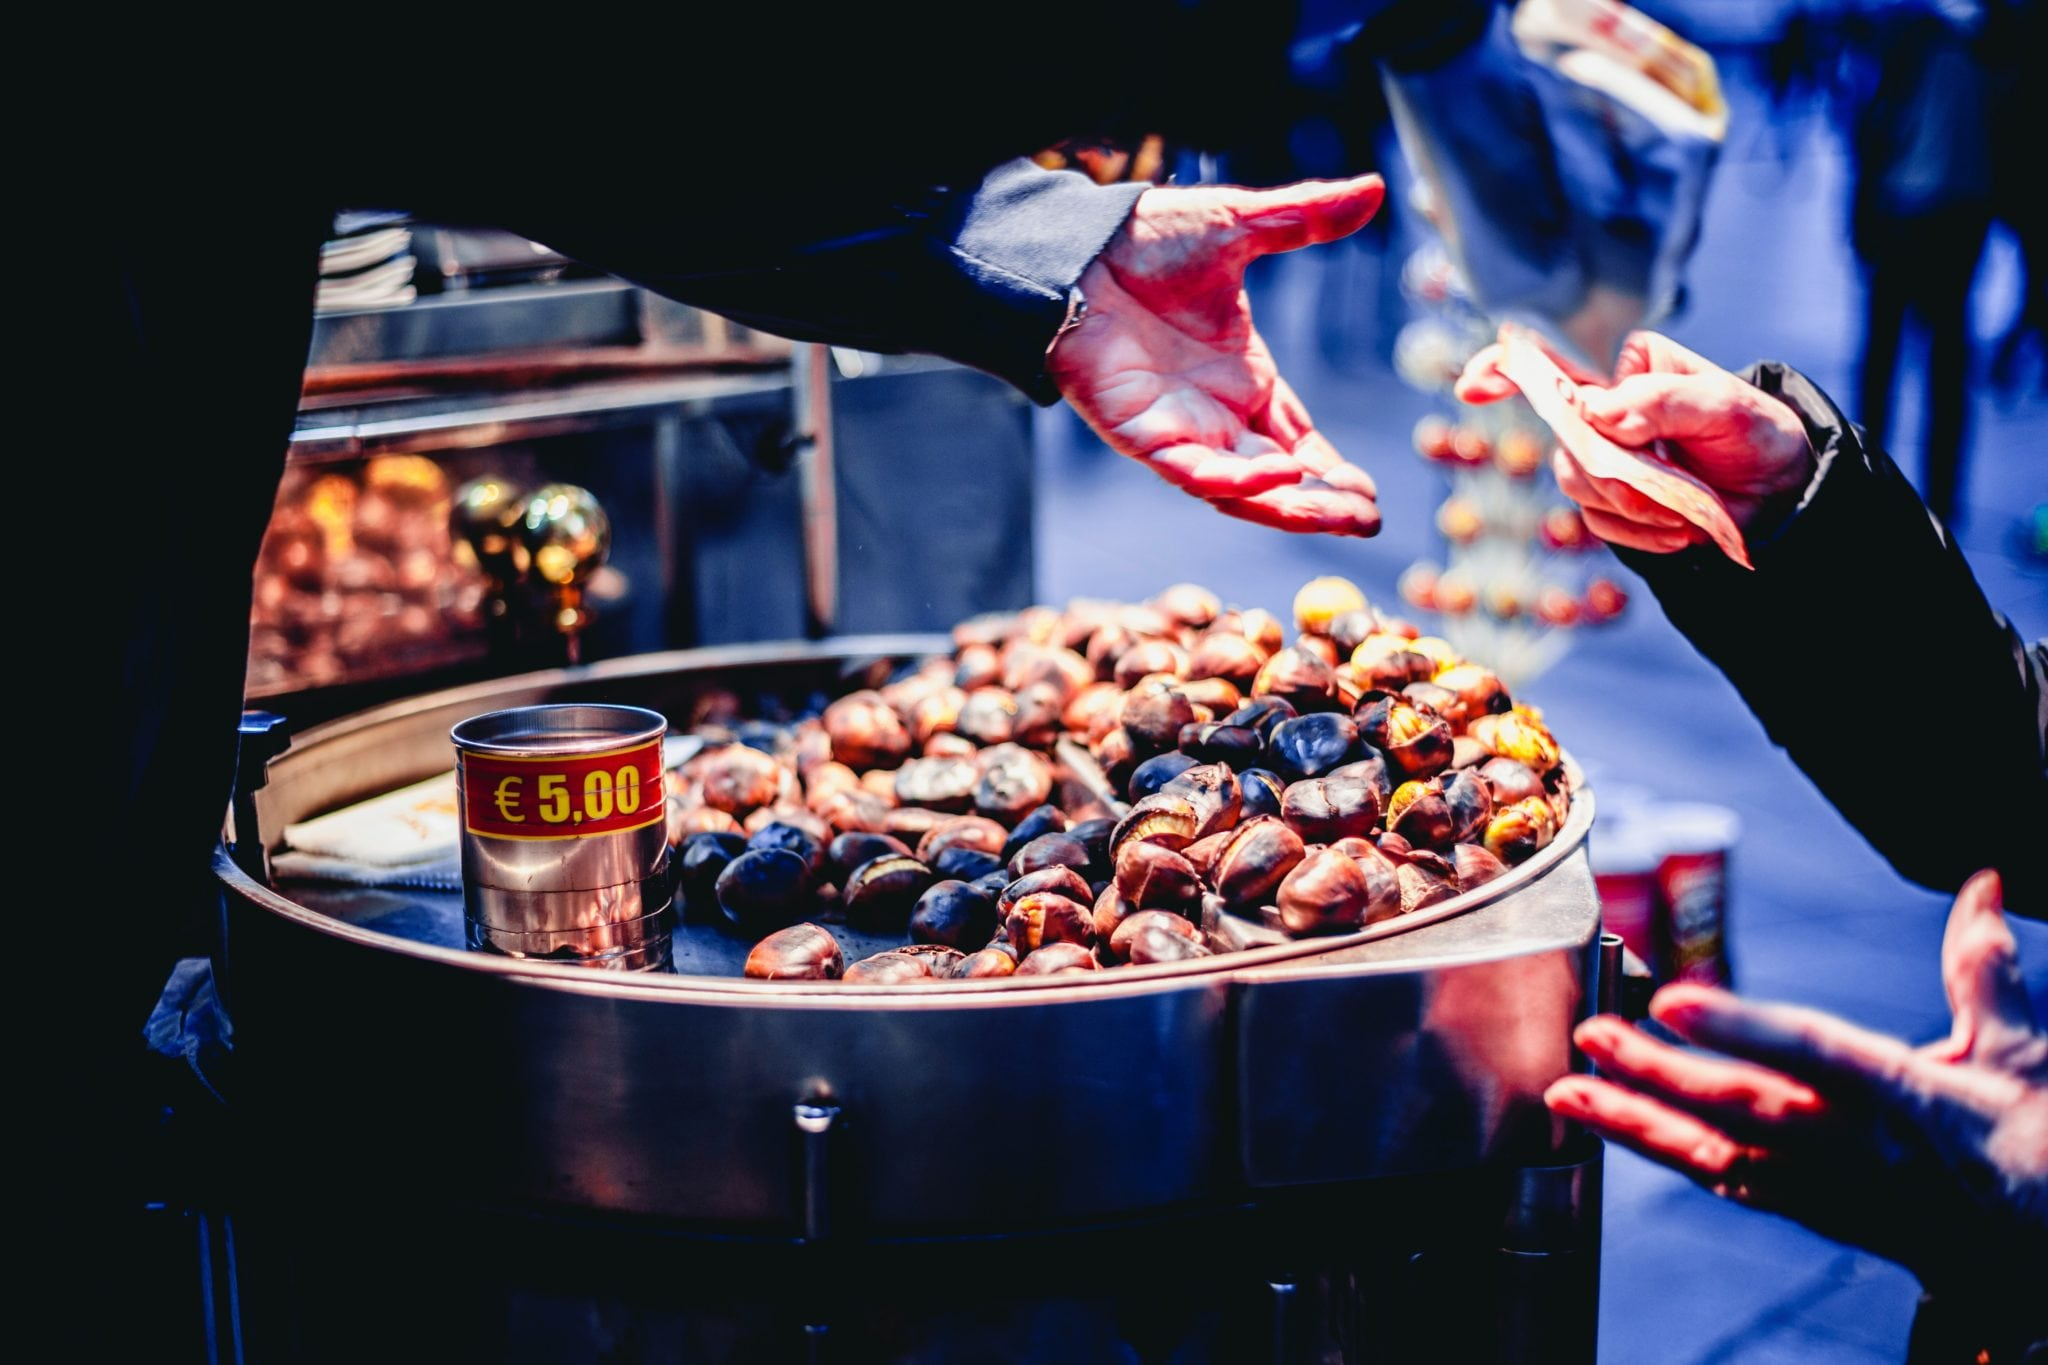 paying for roasted chestnuts